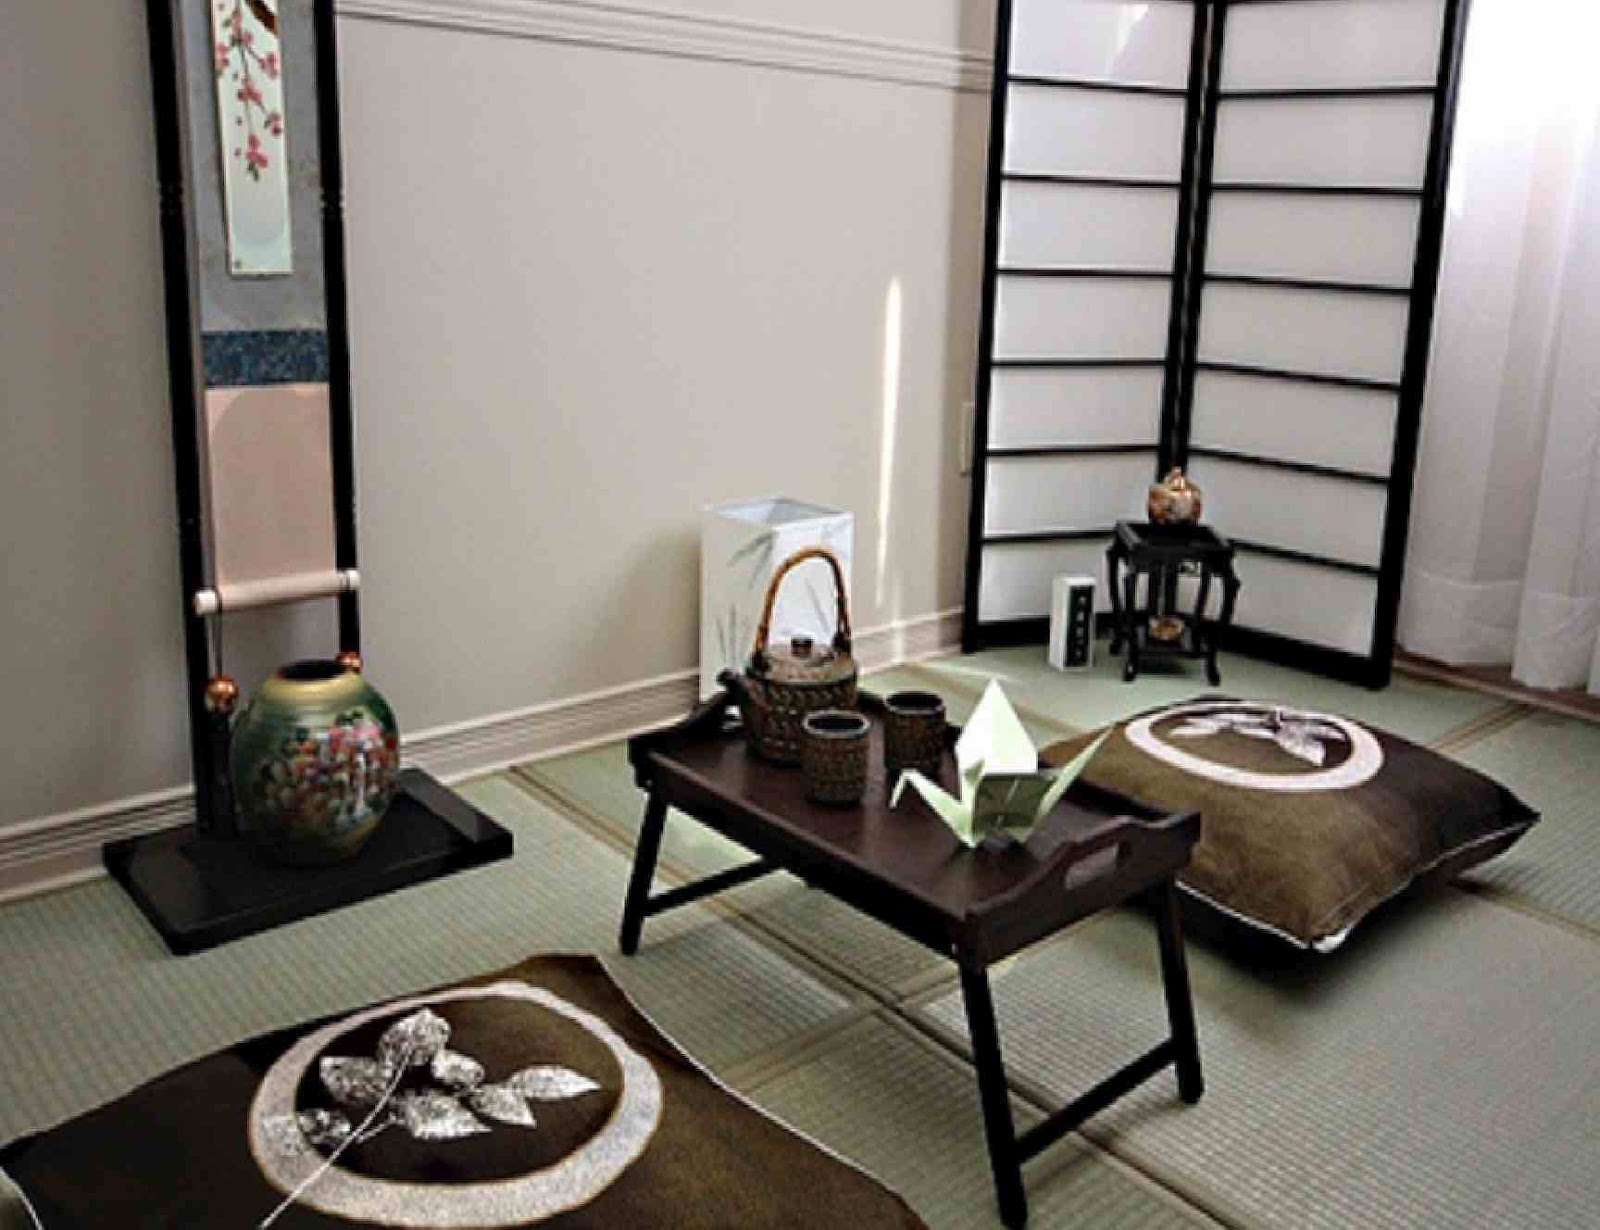 Japanese interior design interior home design for Asian home decor